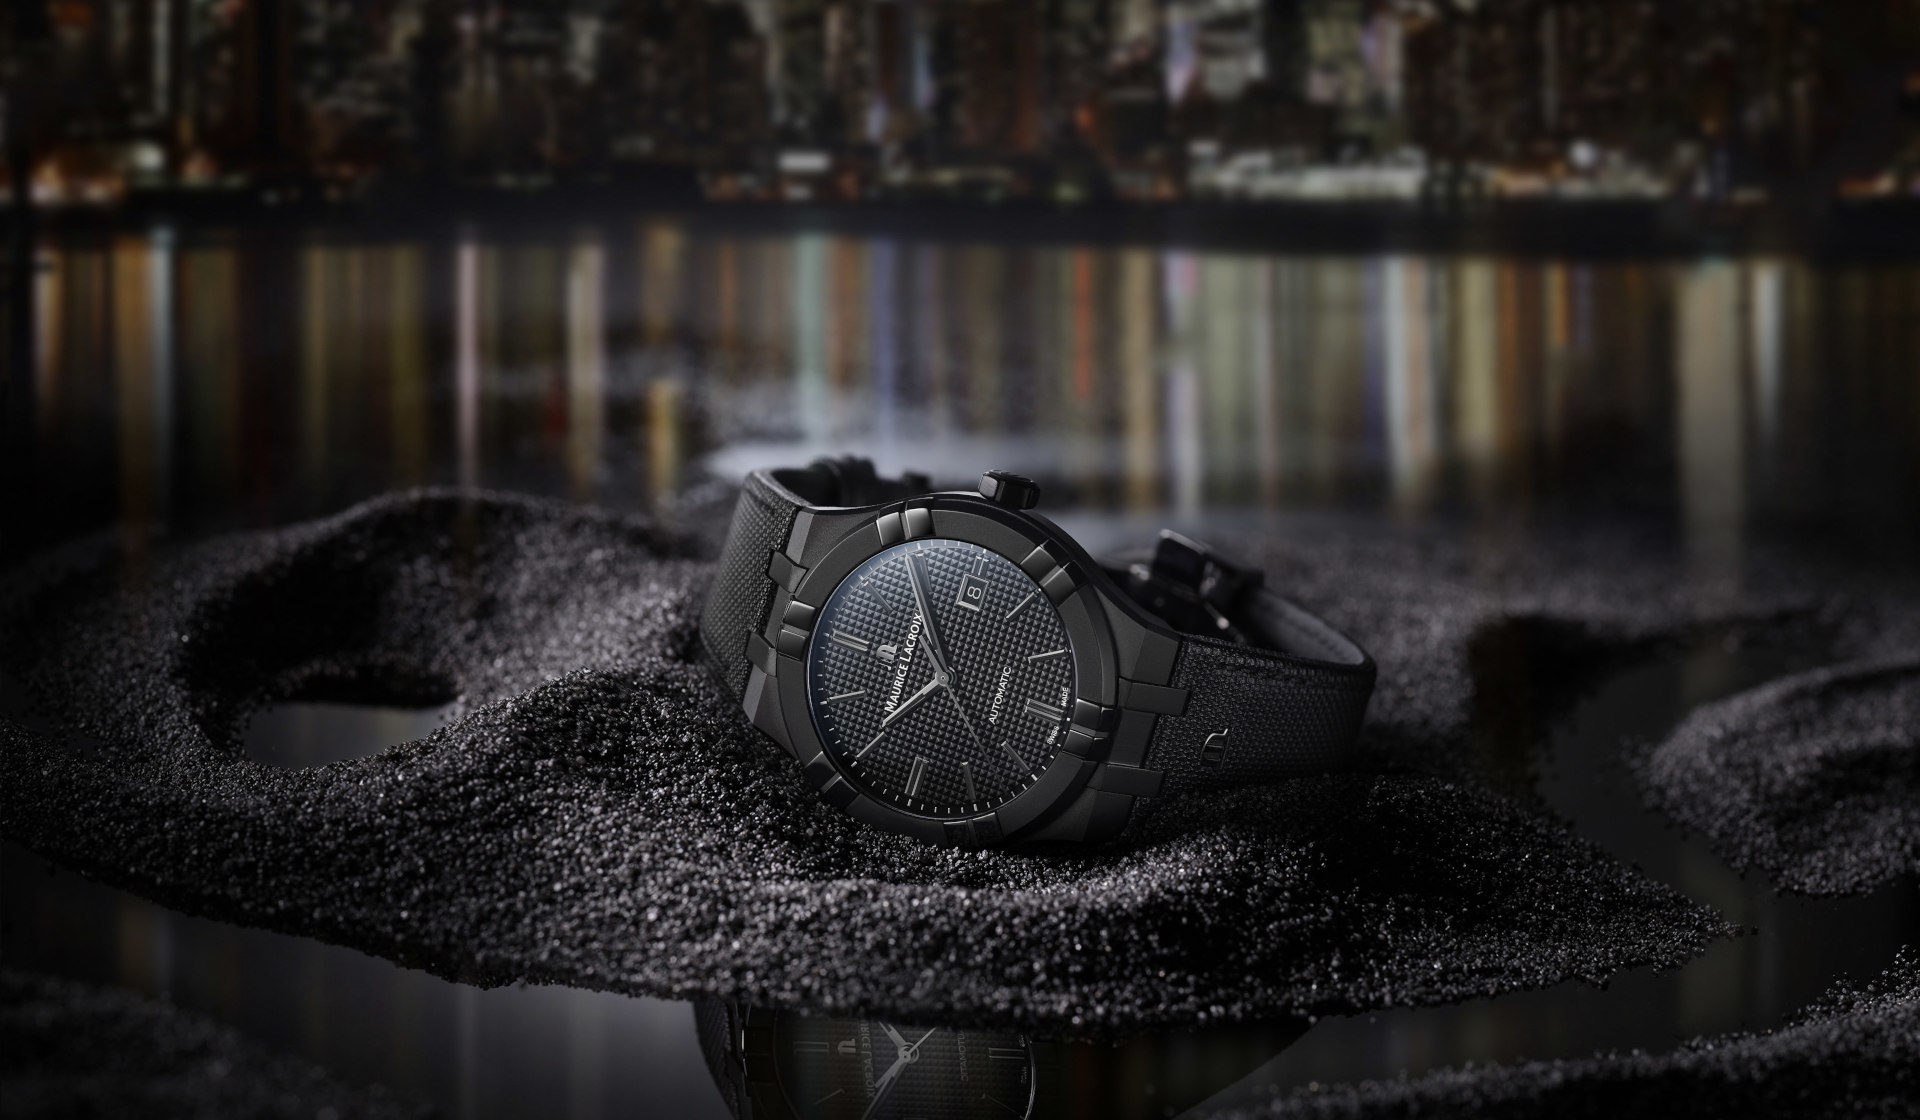 Exploring the dark with the Maurice Lacroix Aikon Automatic Black